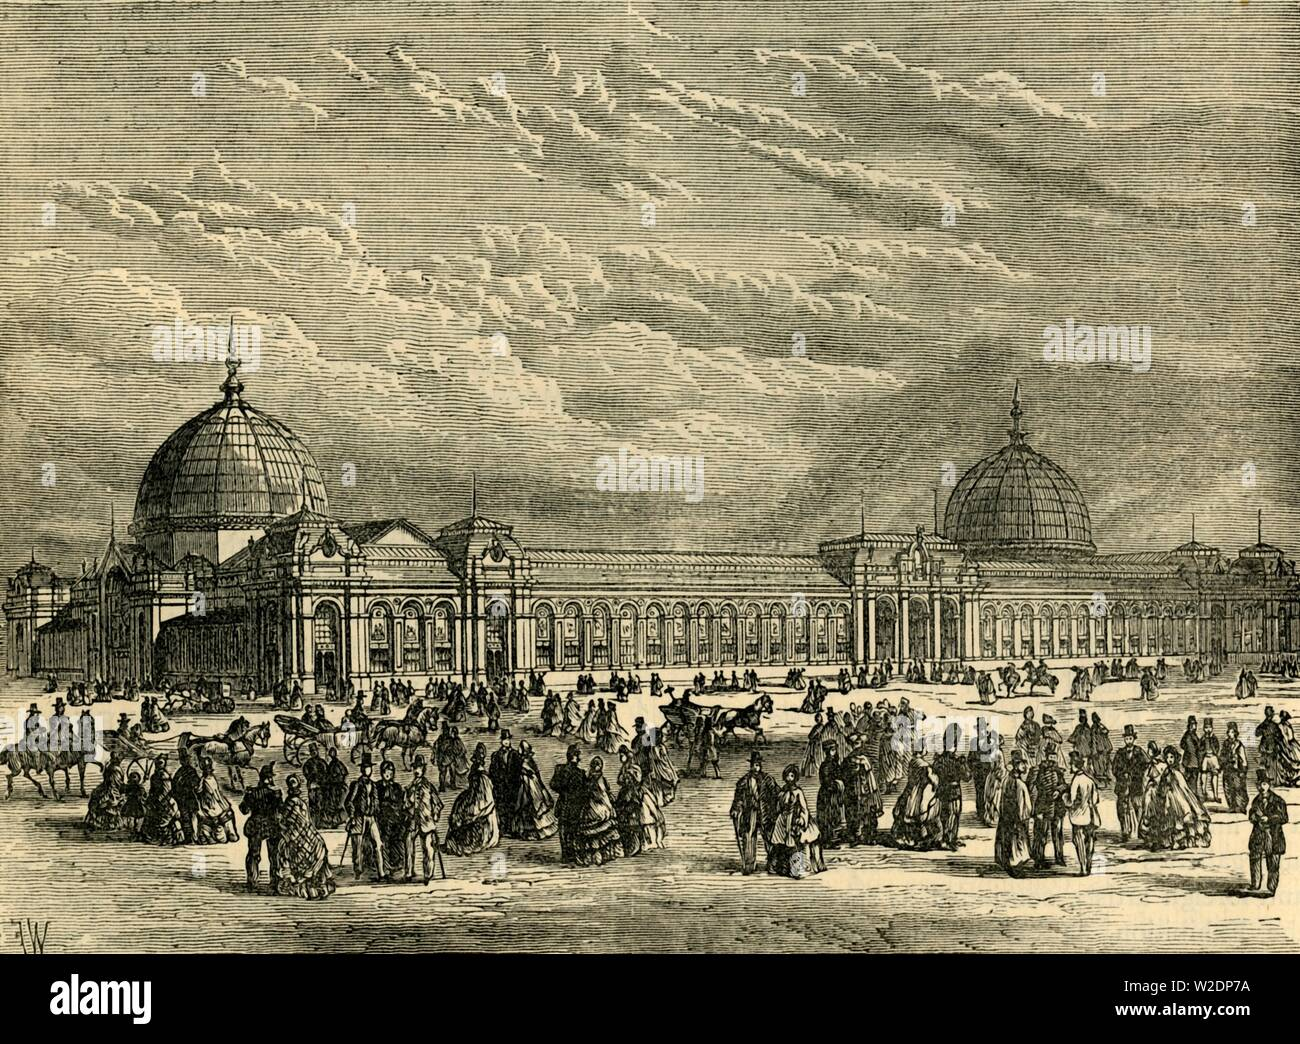 """'The International Exhibition of 1862', (c1876). The Great London Exposition was a world fair held from 1 May to 1 November 1862 in South Kensington, on what is now Exhibition Road with buildings designed by Captain Francis Fowke. From """"Old and New London: A Narrative of Its History, Its People, and Its Places. The Western and Northern Studies"""", by Edward Walford. [Cassell, Petter, Galpin & Co., London, Paris & New York] - Stock Image"""